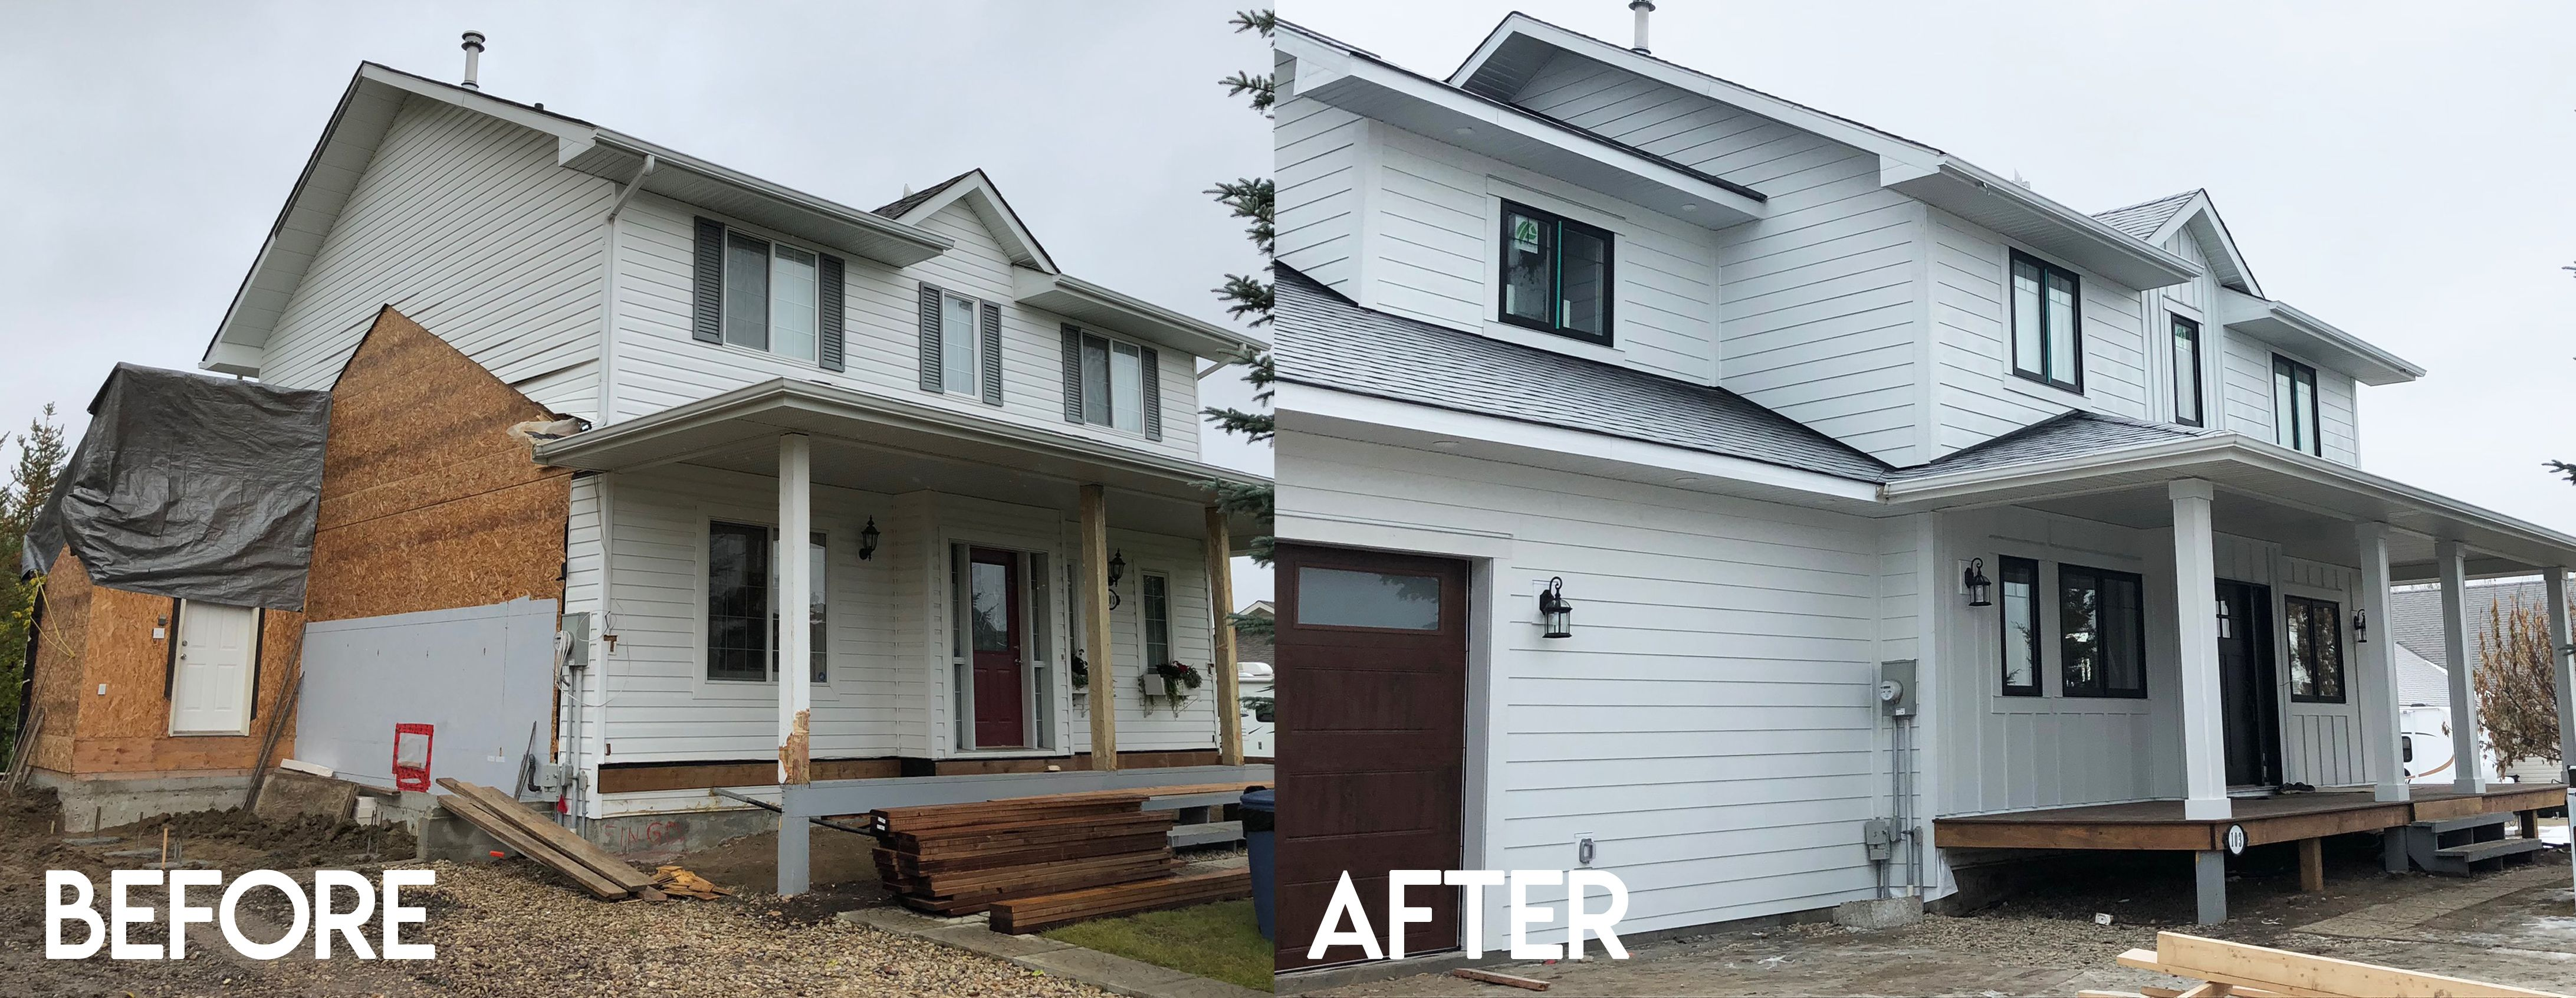 Replaced Existing Vinyl Siding And Installed Beautiful Arctic White Hardie Plank And Hardie Exterior Renovation Farmhouse Renovation Modern Farmhouse Exterior